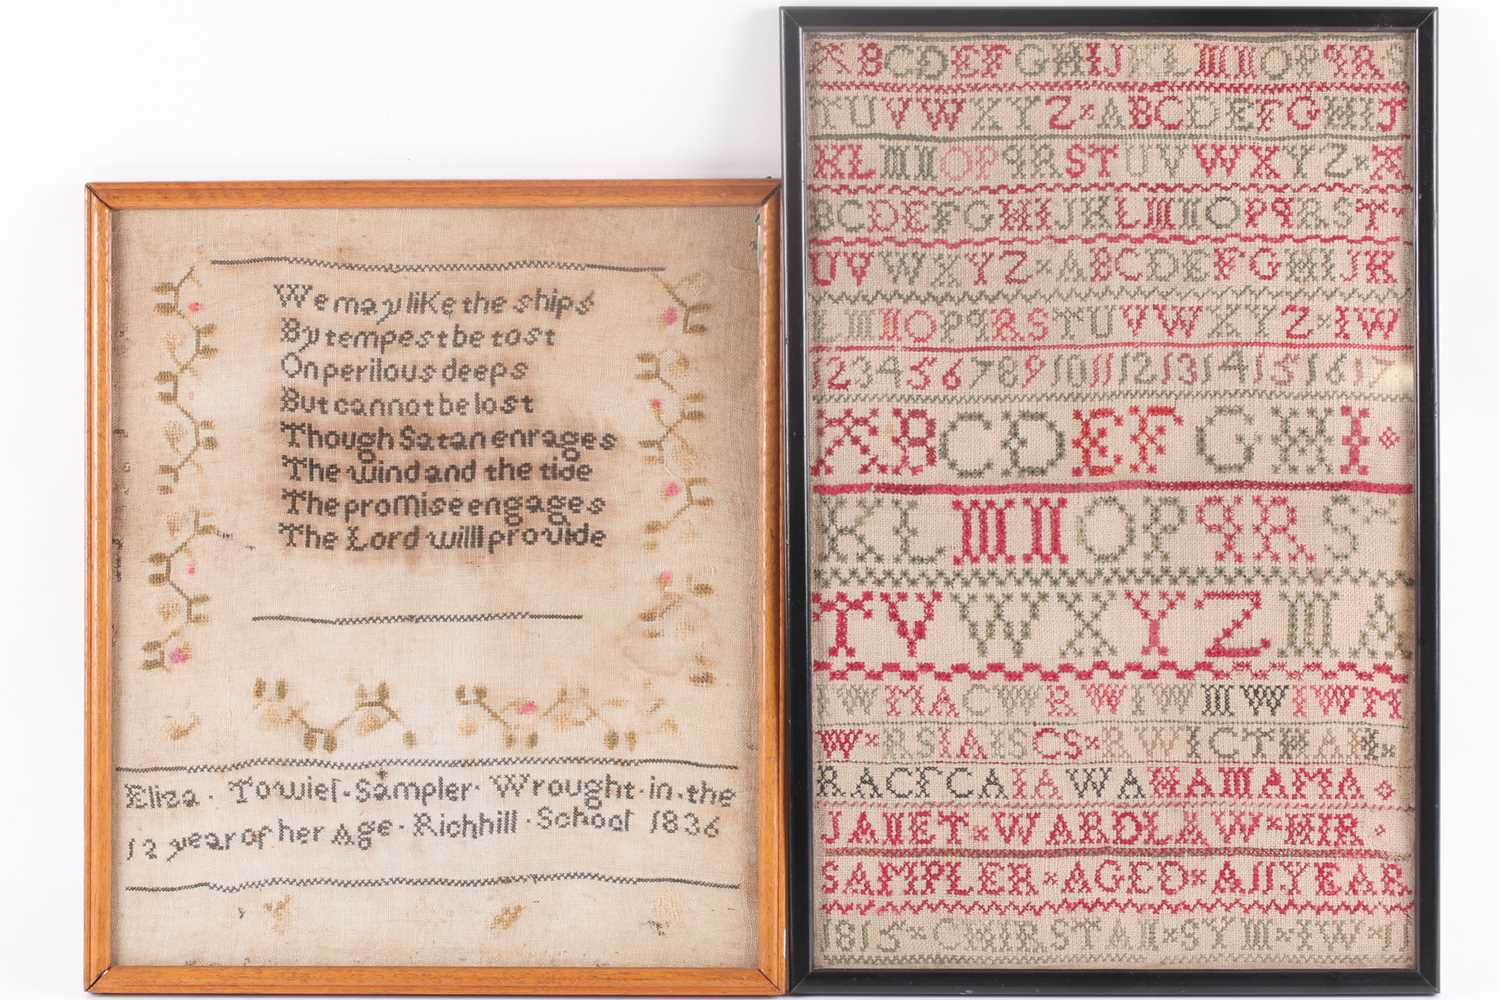 A William IV needlework sampler, with verse from John Newtons 'Olney Hymns ' We may like the ships